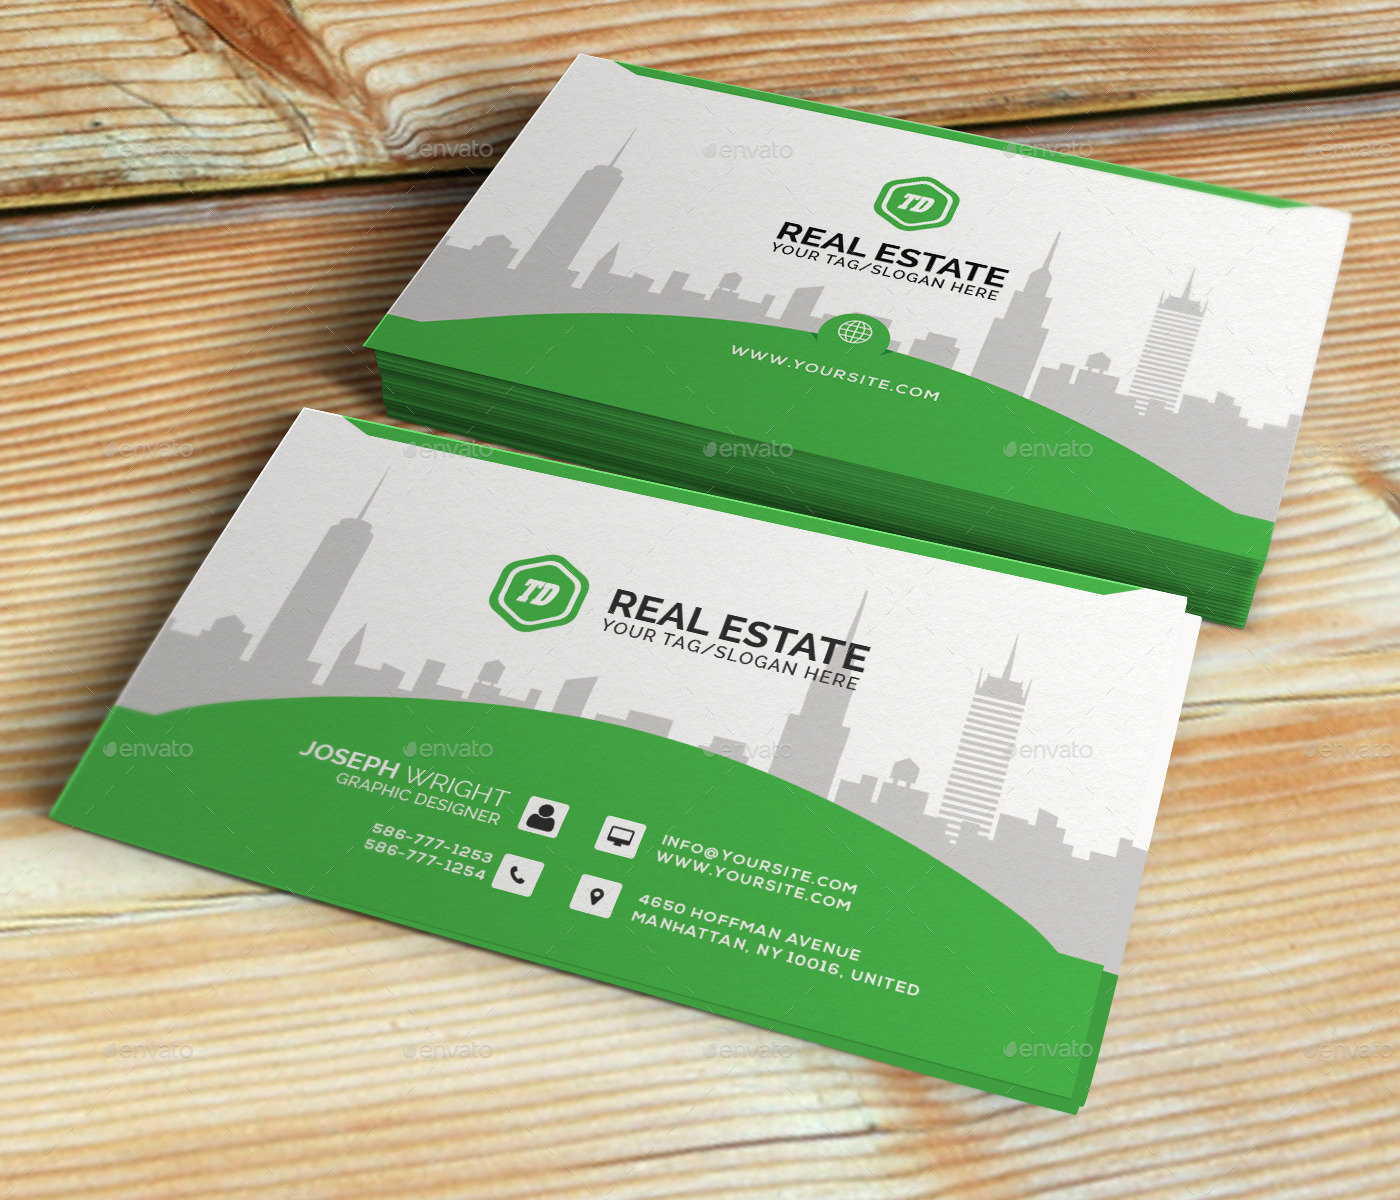 Real estate business card template by themedesk graphicriver template corporate business cards previewpreview 00g preview preview 01g previewpreview 02g accmission